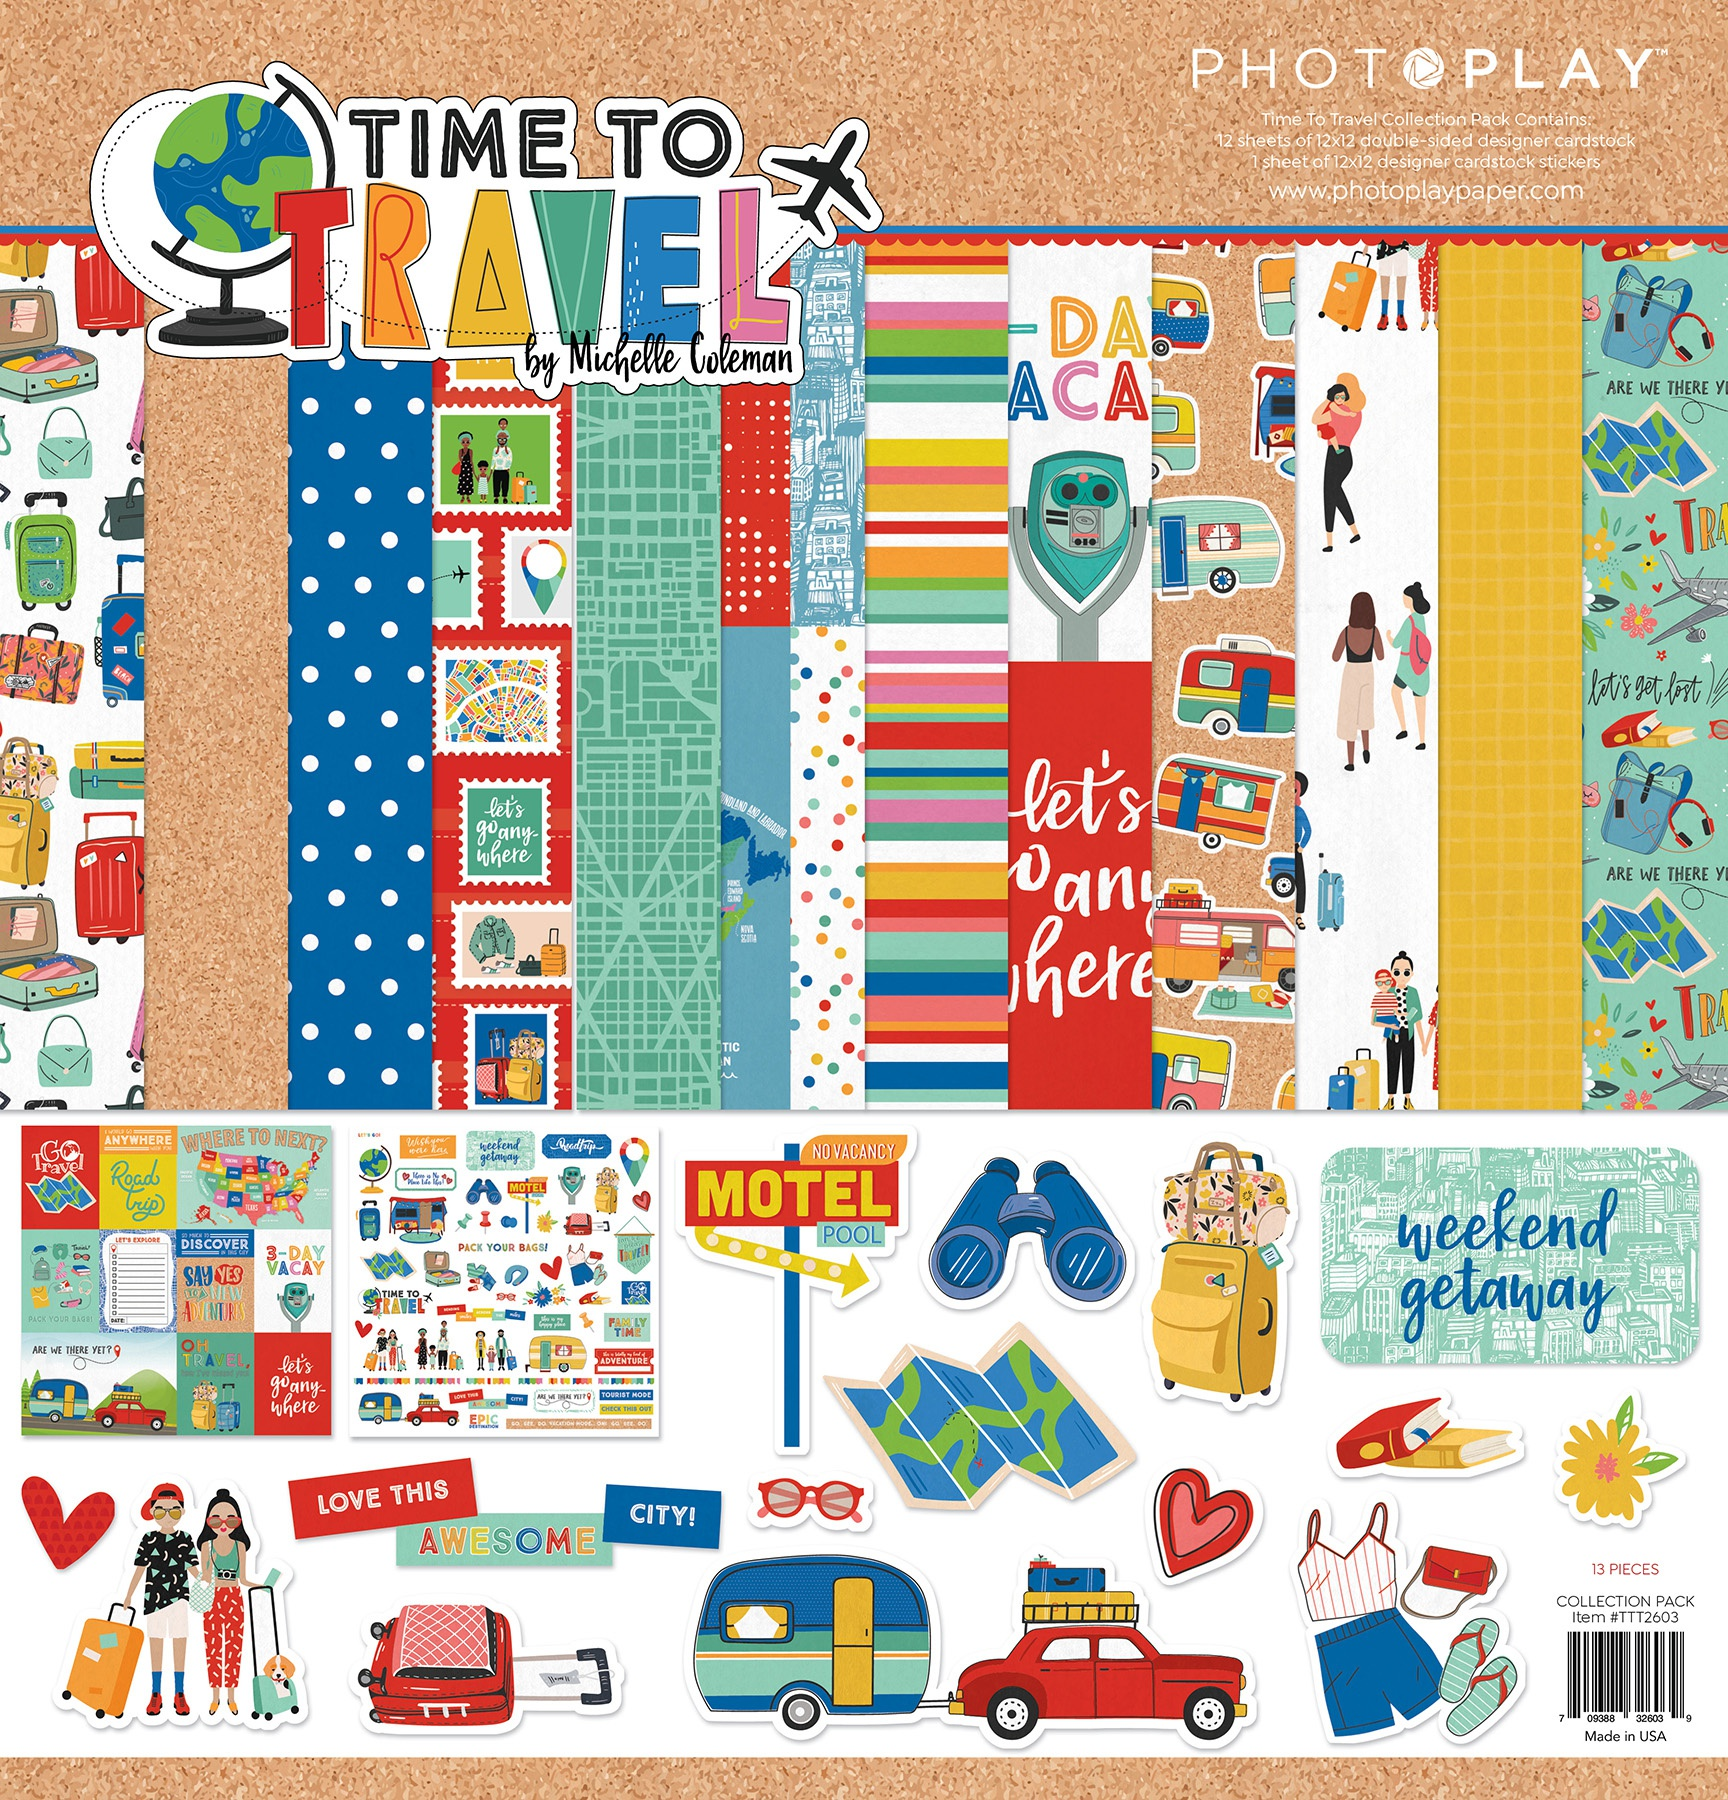 PhotoPlay Collection Pack 12X12 - Time To Travel